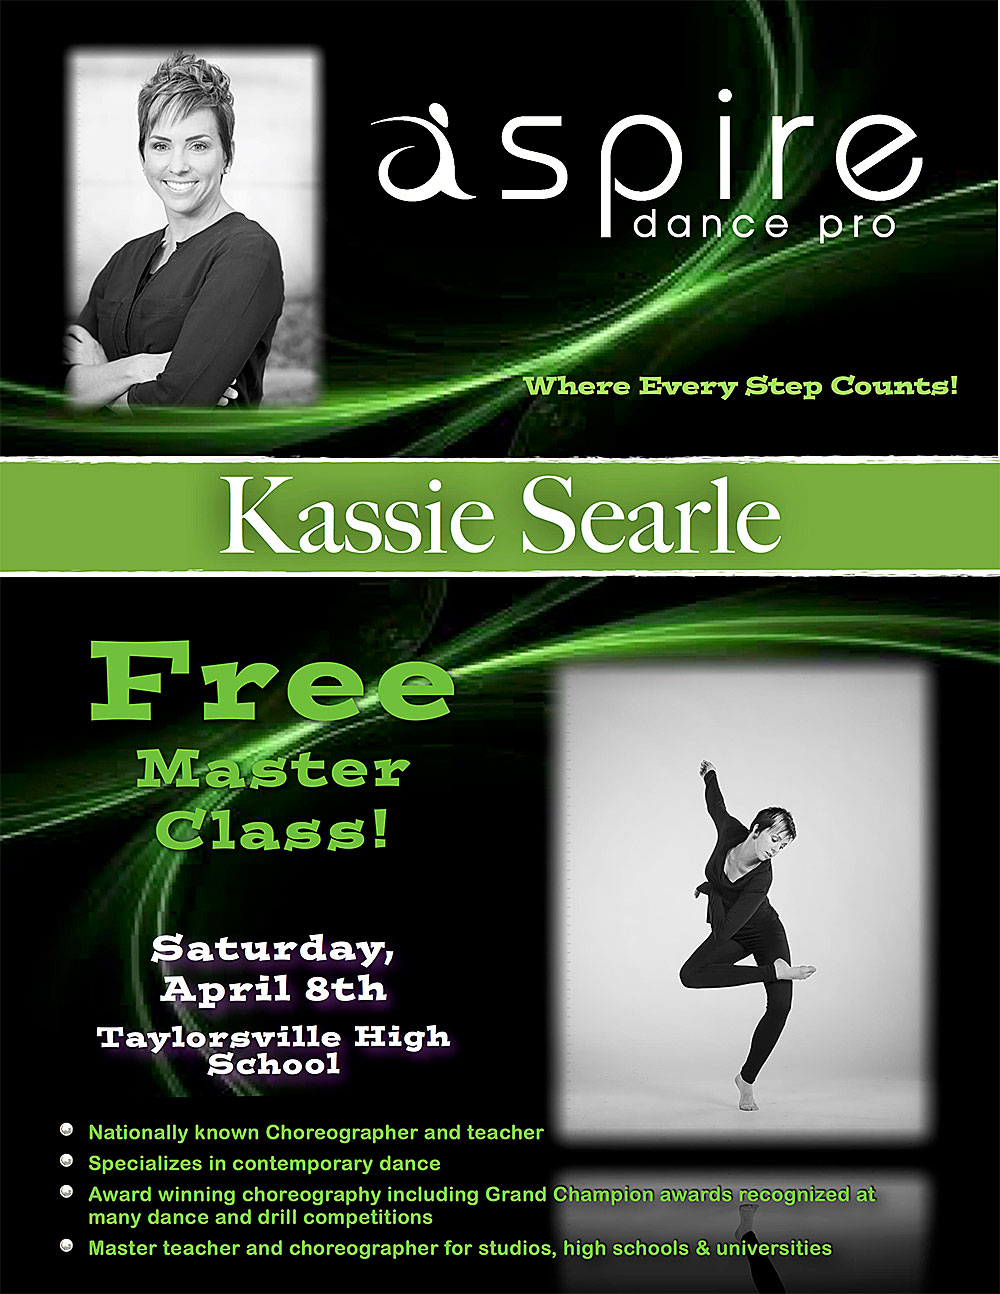 Kassie Searle - Aspire Dance Pro Competitions Master Class Instructor